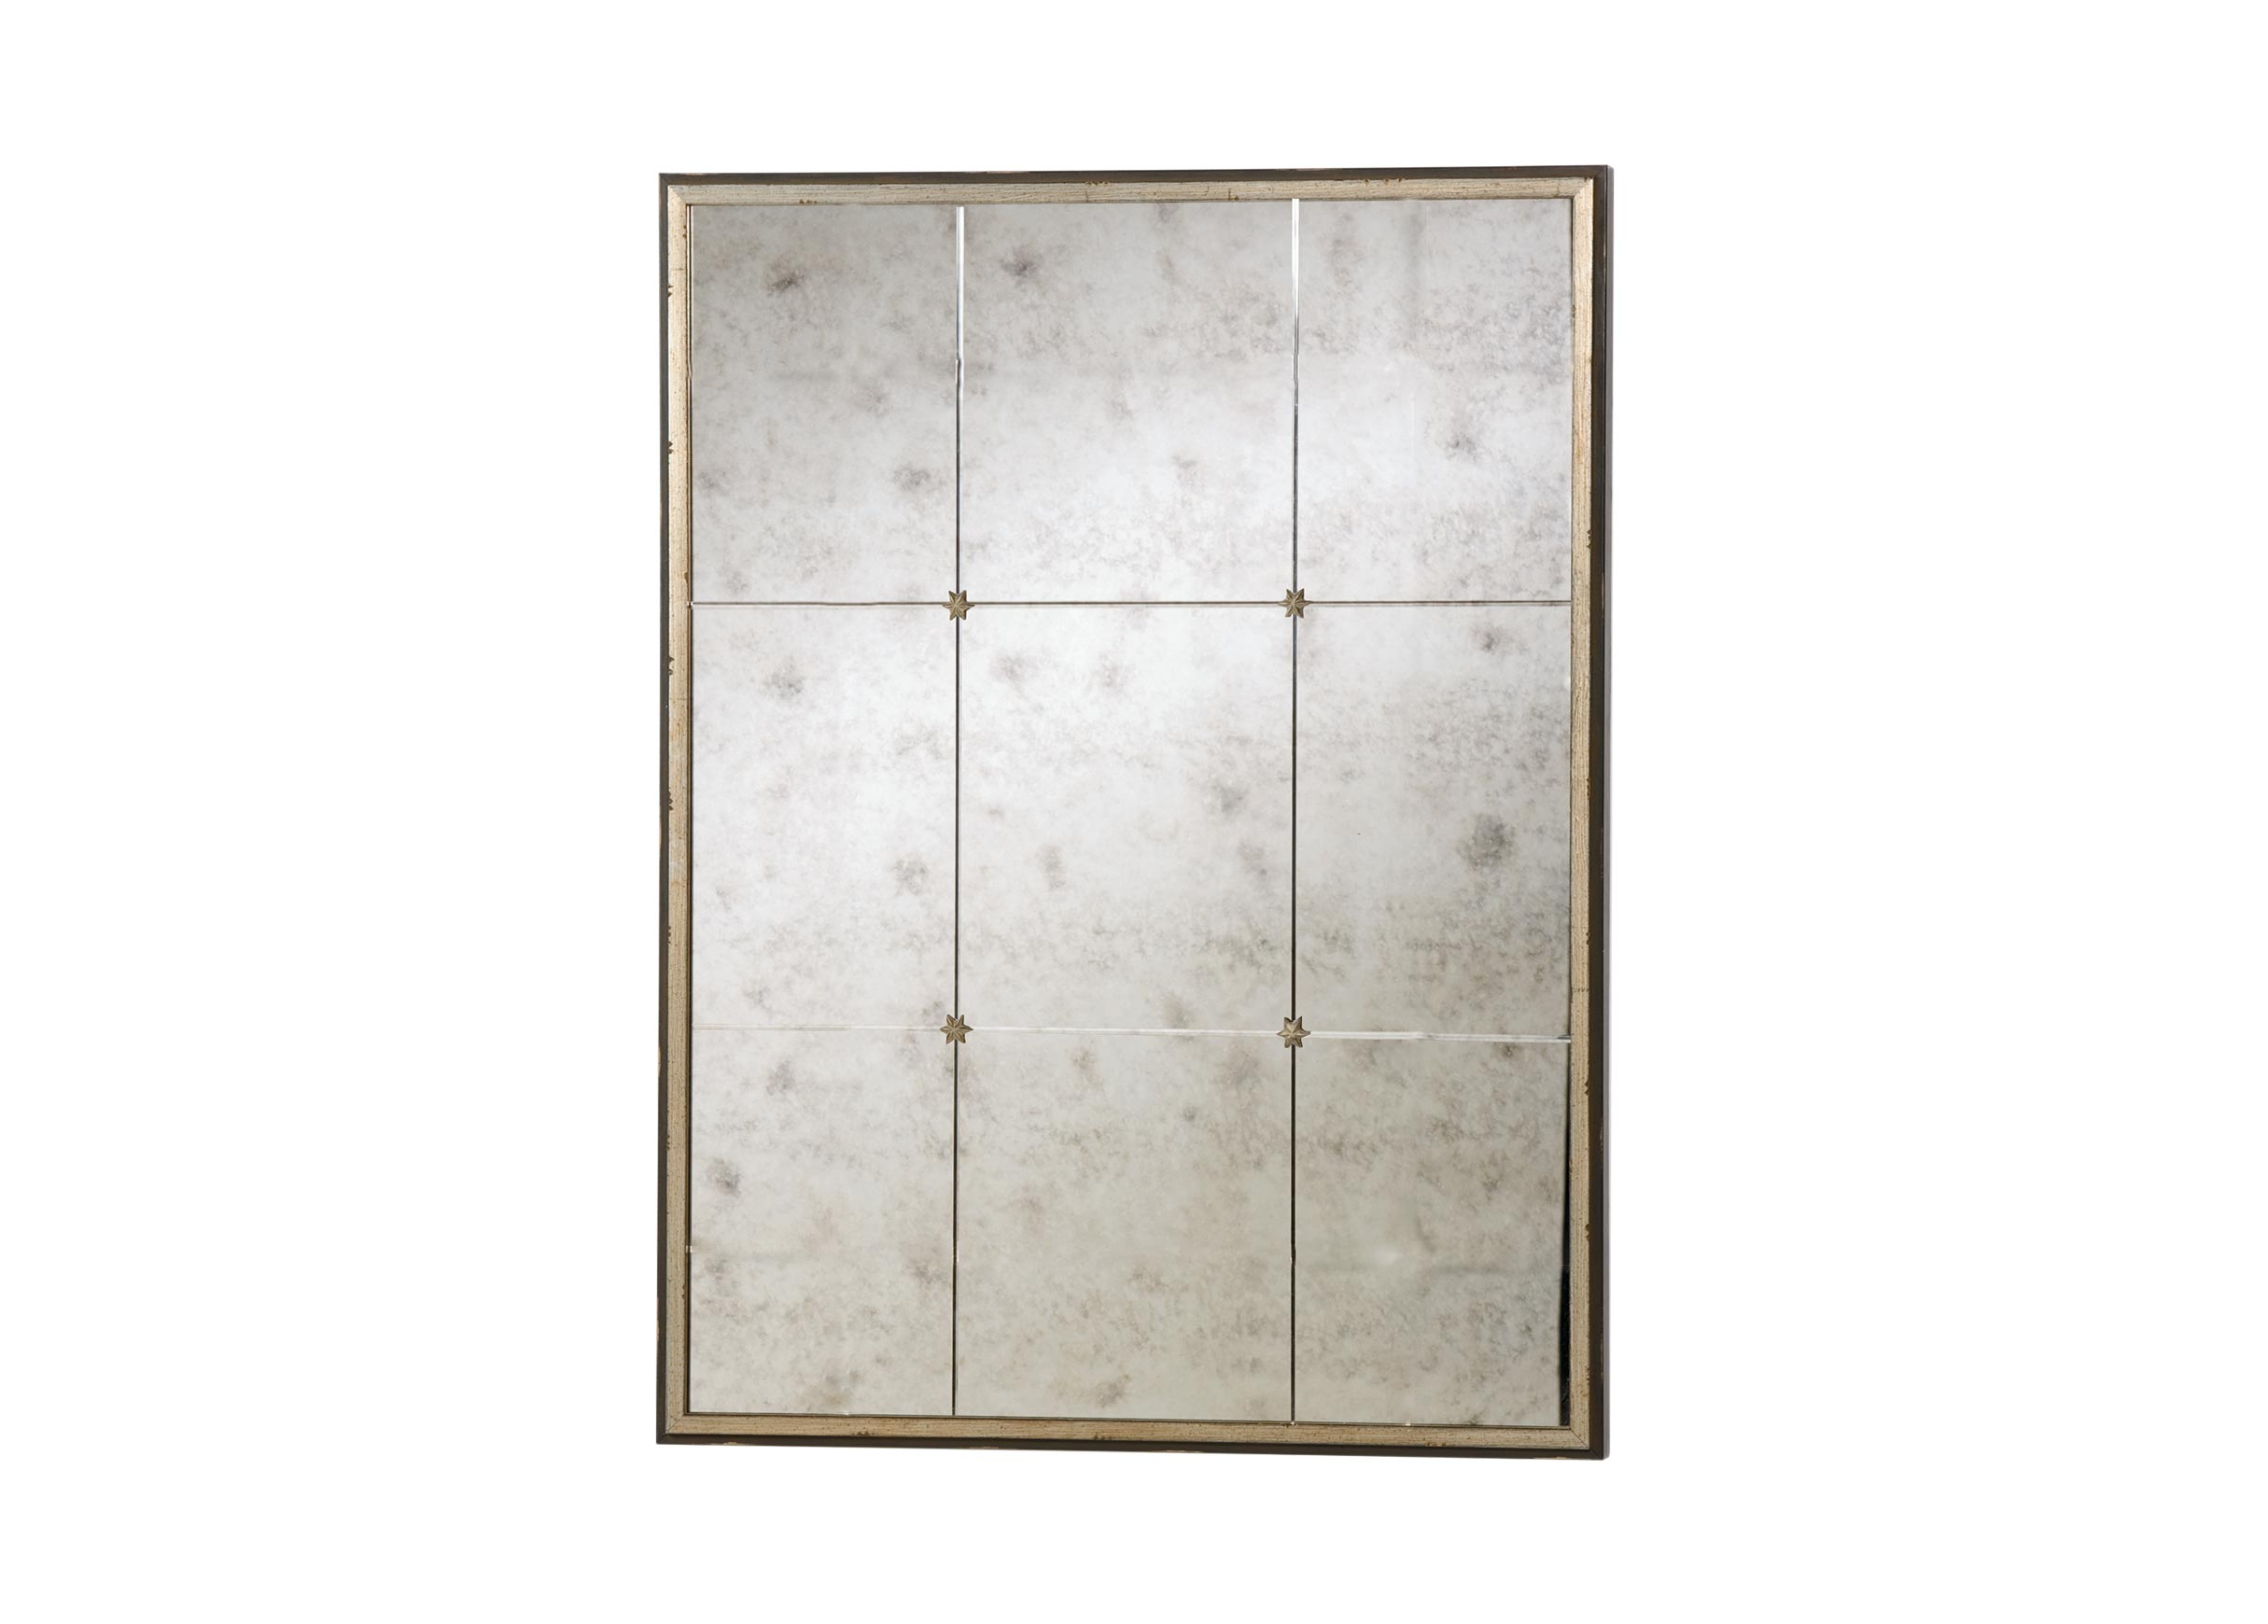 Ethan Allen Within Recent Old Fashioned Wall Mirrors (Gallery 20 of 20)